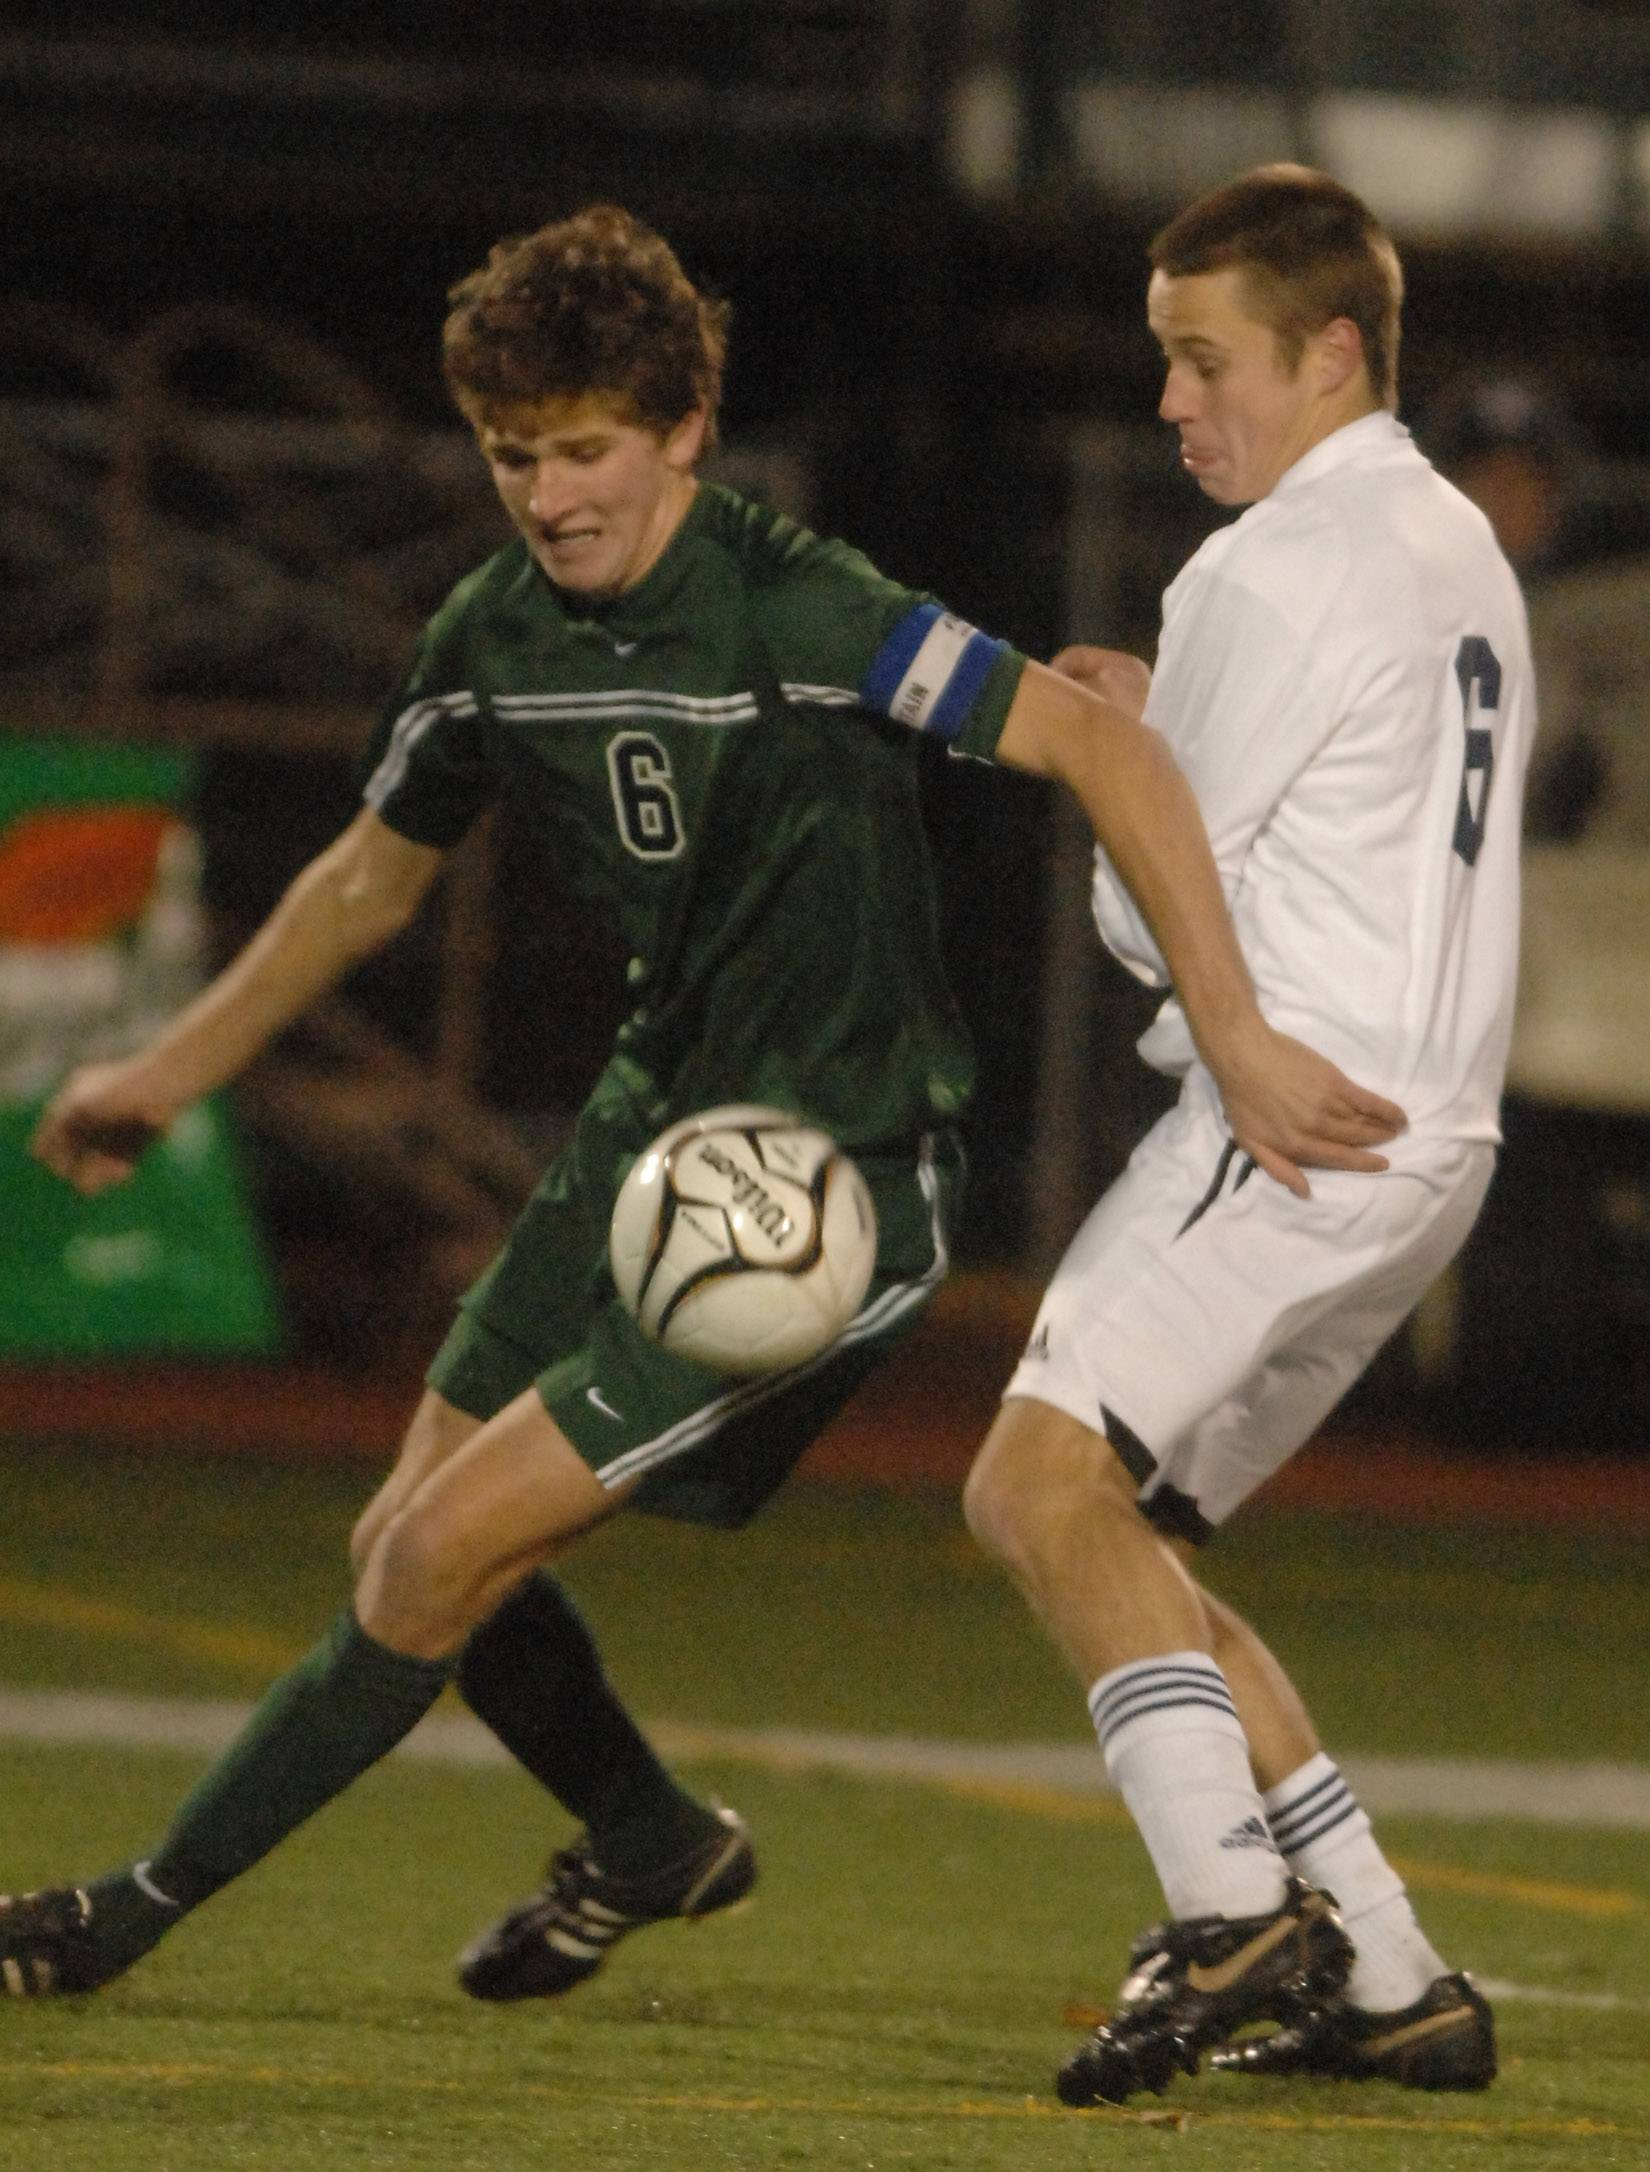 New Trier standout Chris Ritter, left, was one of two local players to sign with the Chicago Fire in the off-season as part of its training academy and development program.